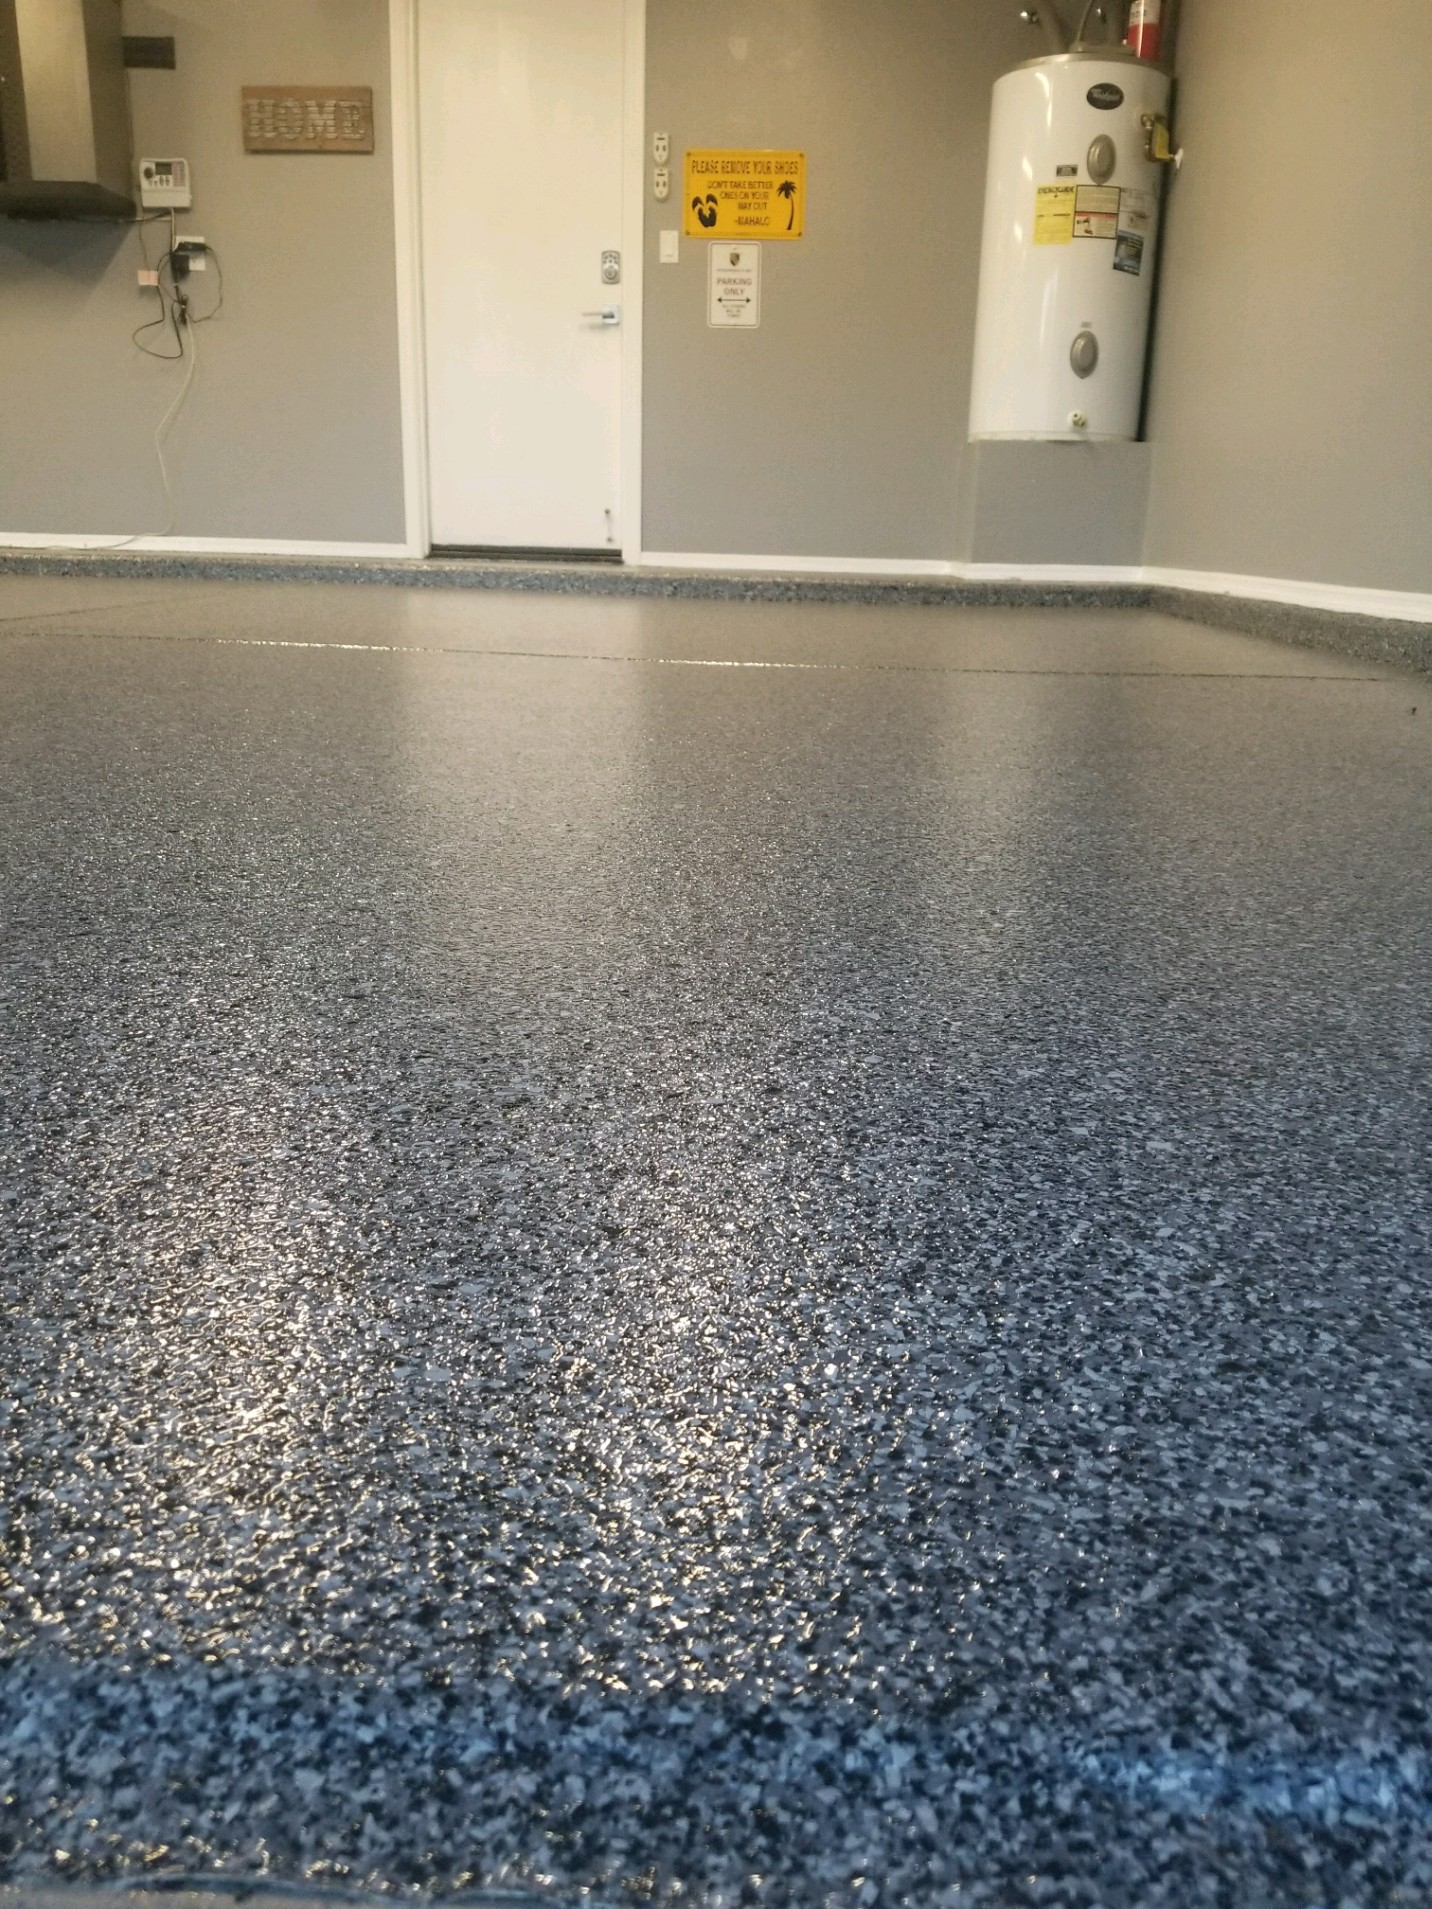 Garage Floor Epoxy Steps Epoxy Flooring Phoenix Az Epoxy Floor Coatings Dreamcoat Flooring